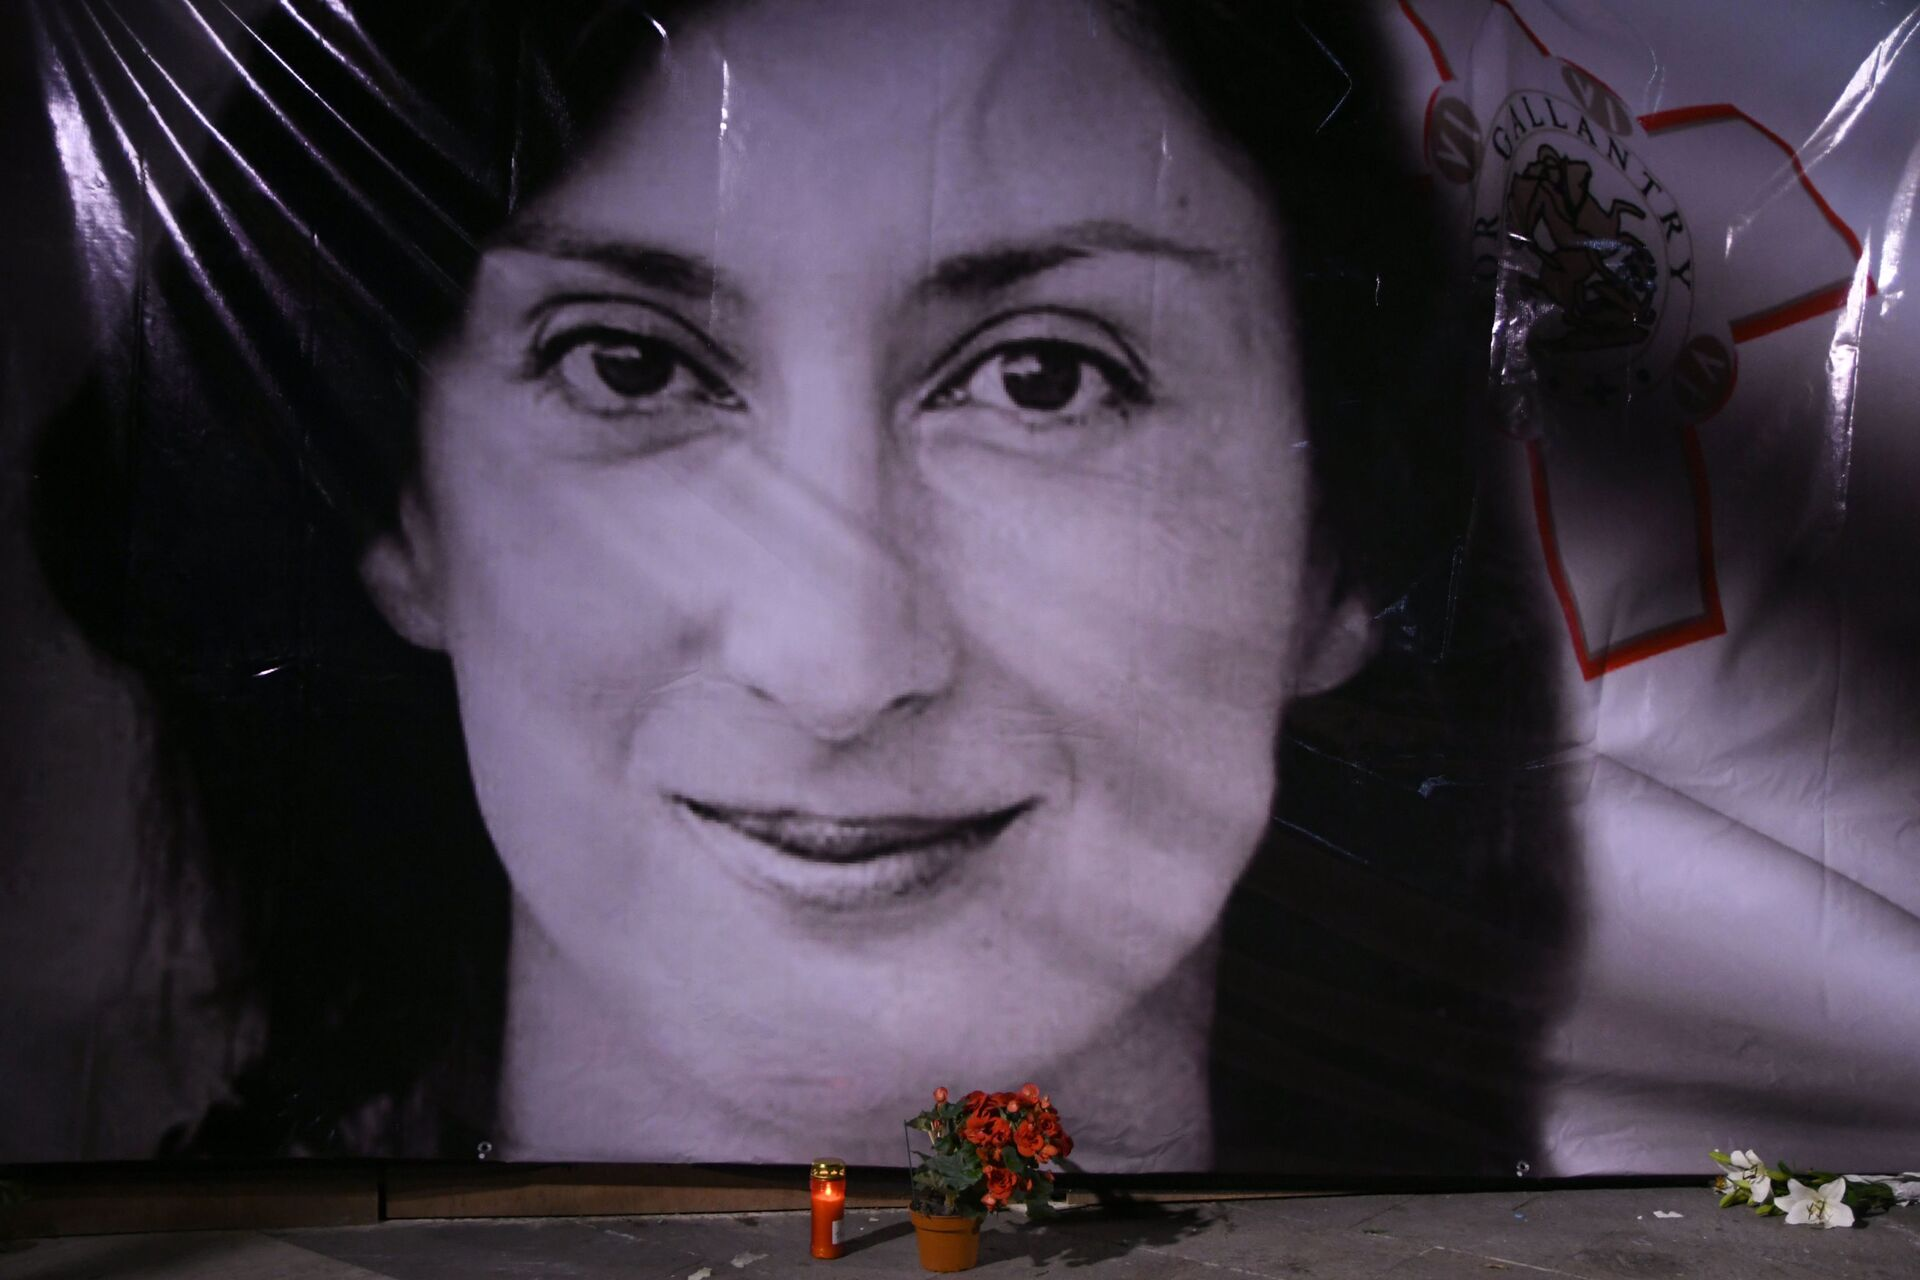 In this Tuesday, Oct. 16, 2018 file photo, flowers and a candle lie in front of a portrait of slain investigative journalist Daphne Caruana Galizia during a vigil outside the law courts in Valletta, Malta. - Sputnik International, 1920, 07.09.2021